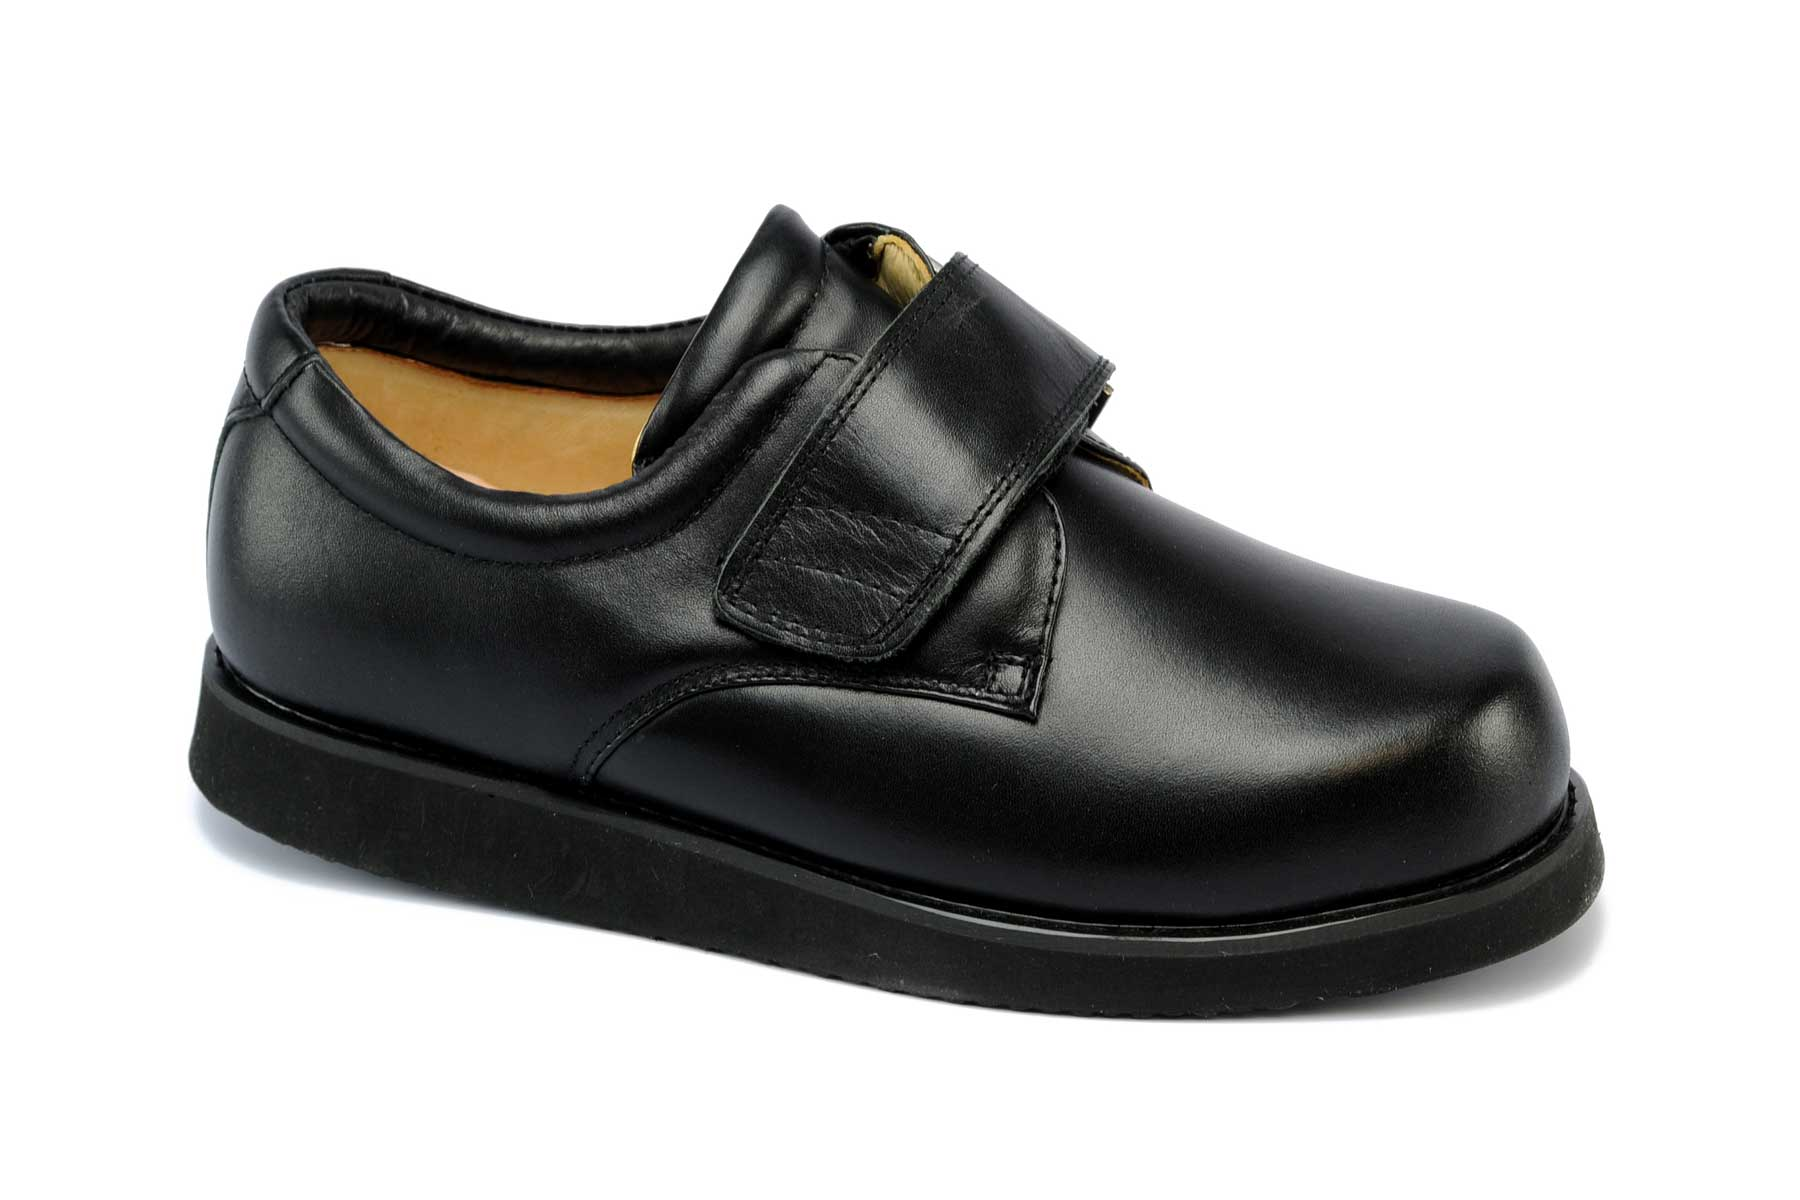 The Best Support Dress Shoes For Men